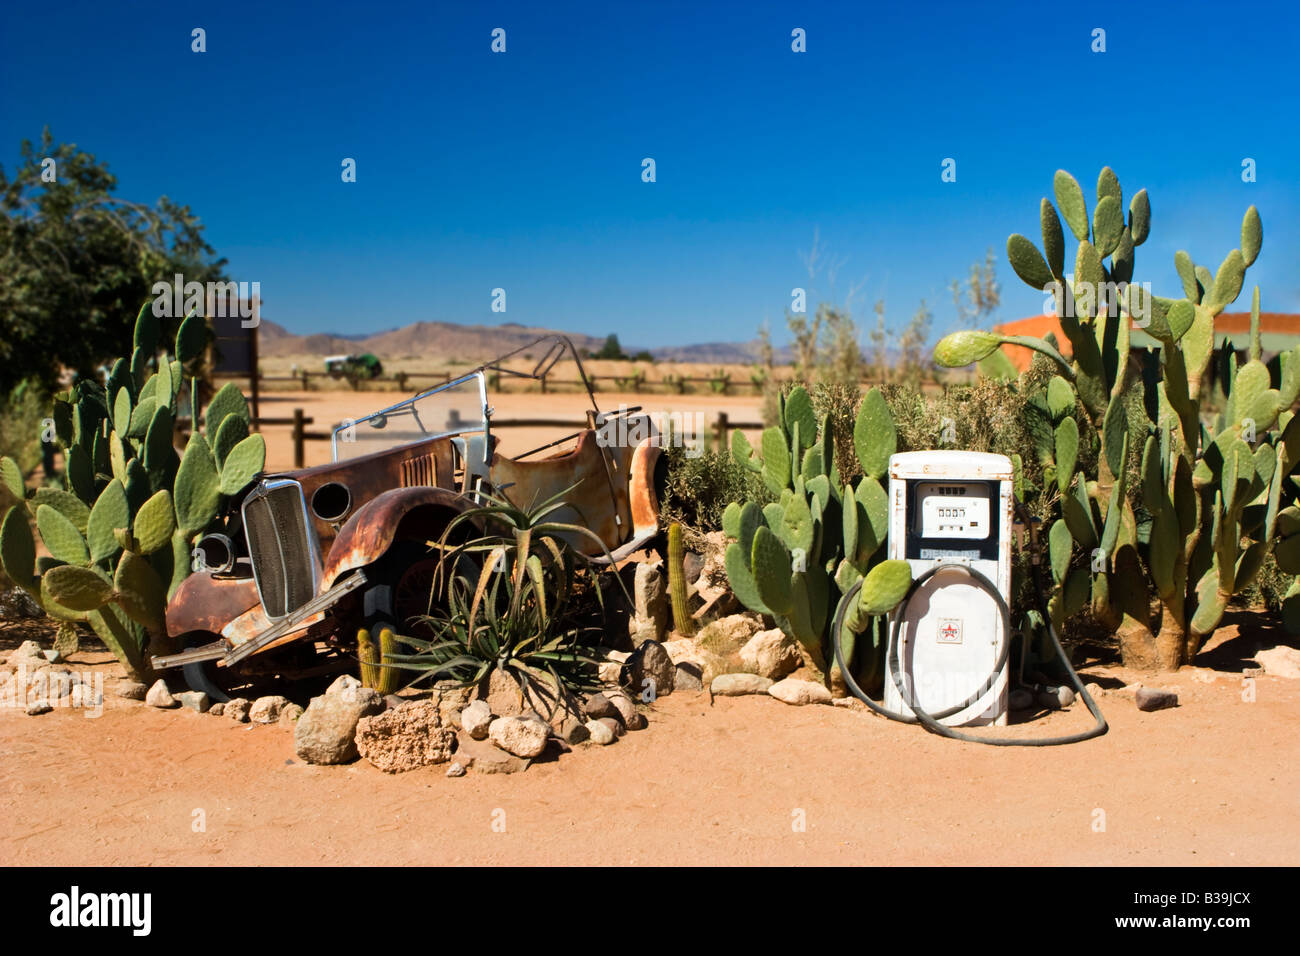 A Rusty Car at Solitaire Gasoline Station, Namibia - Stock Image